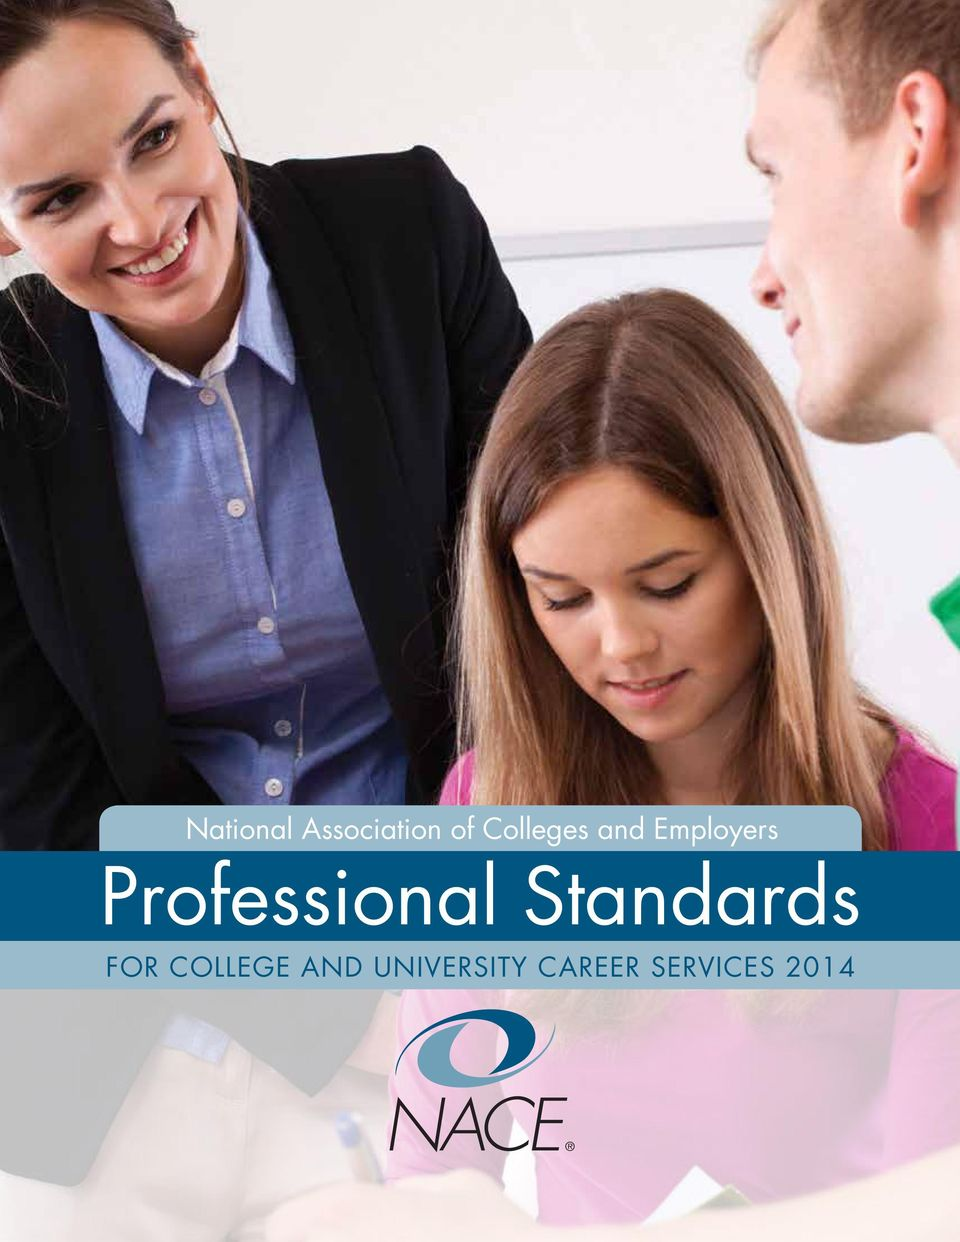 Professional Standards FOR